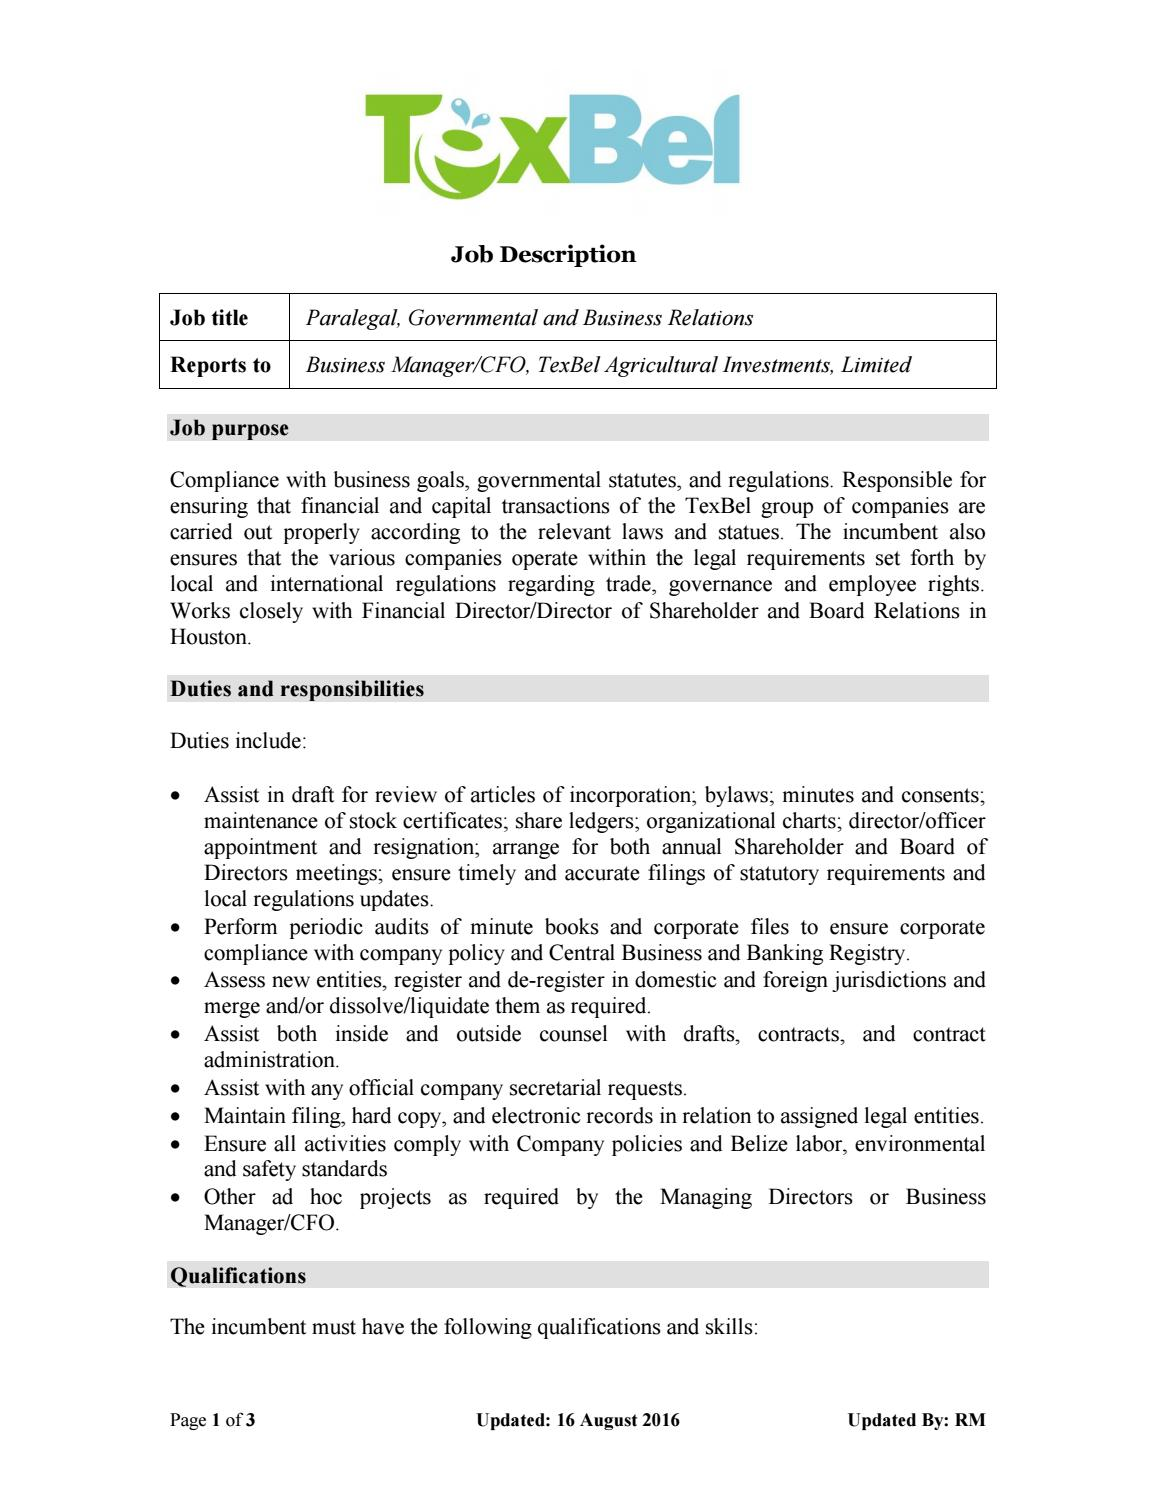 Job description paralegal texbel by beltraide issuu - Compliance officer bank job description ...